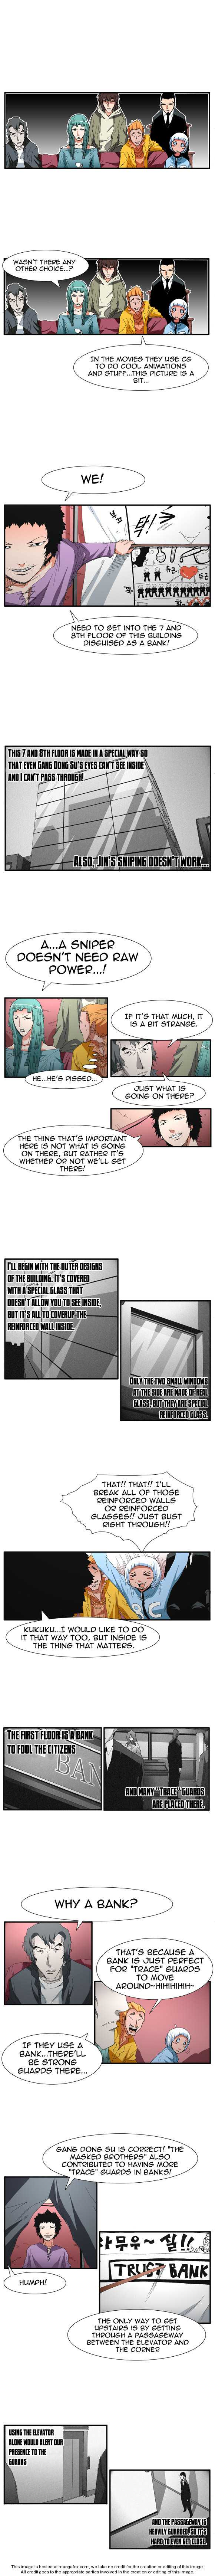 Trace 15 Page 2